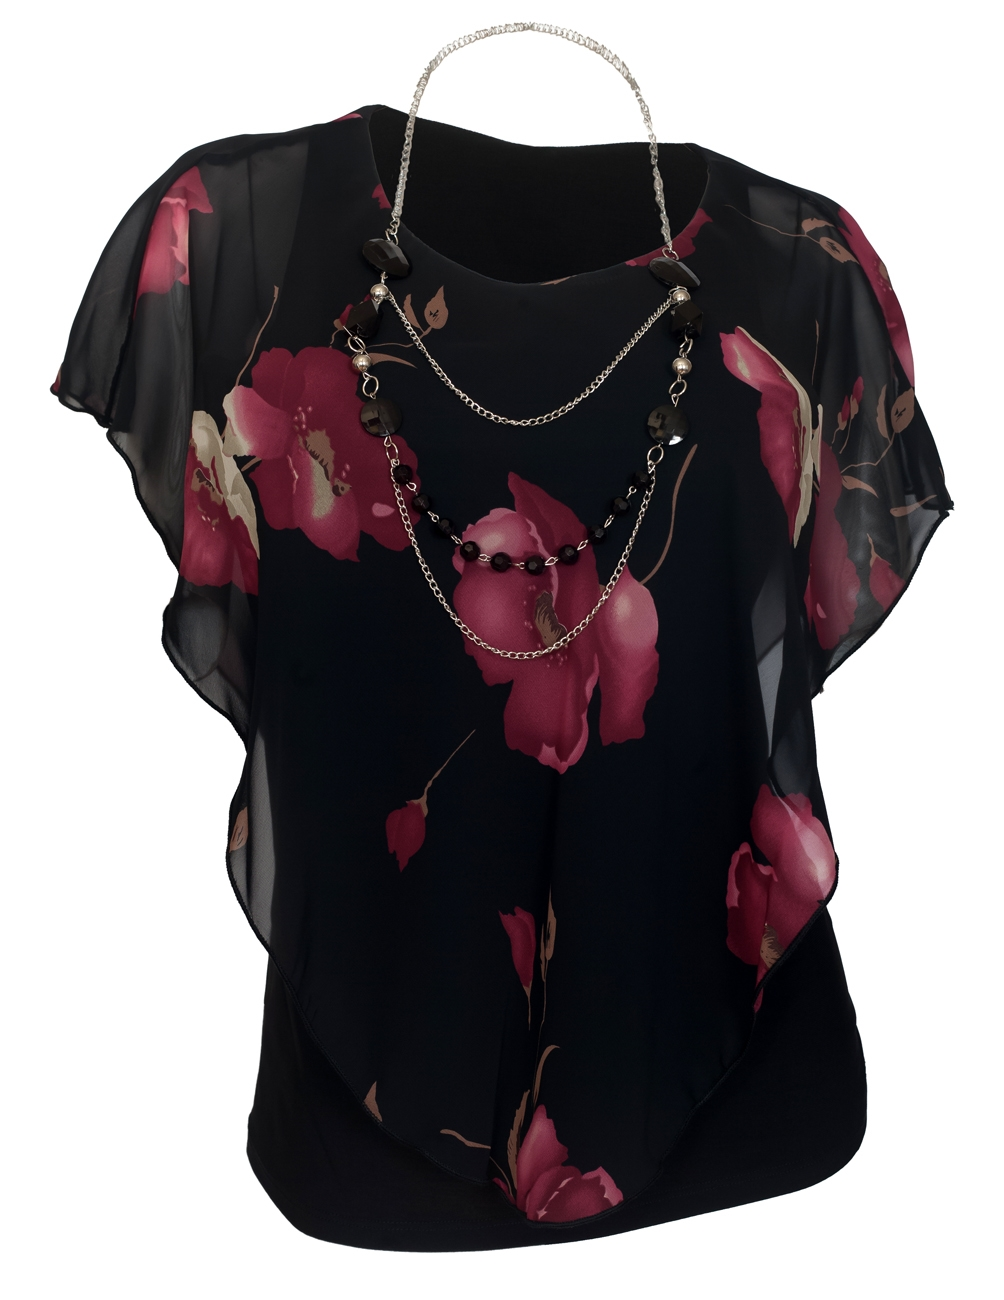 Plus Size Layered Poncho Top Black Floral Print 1792